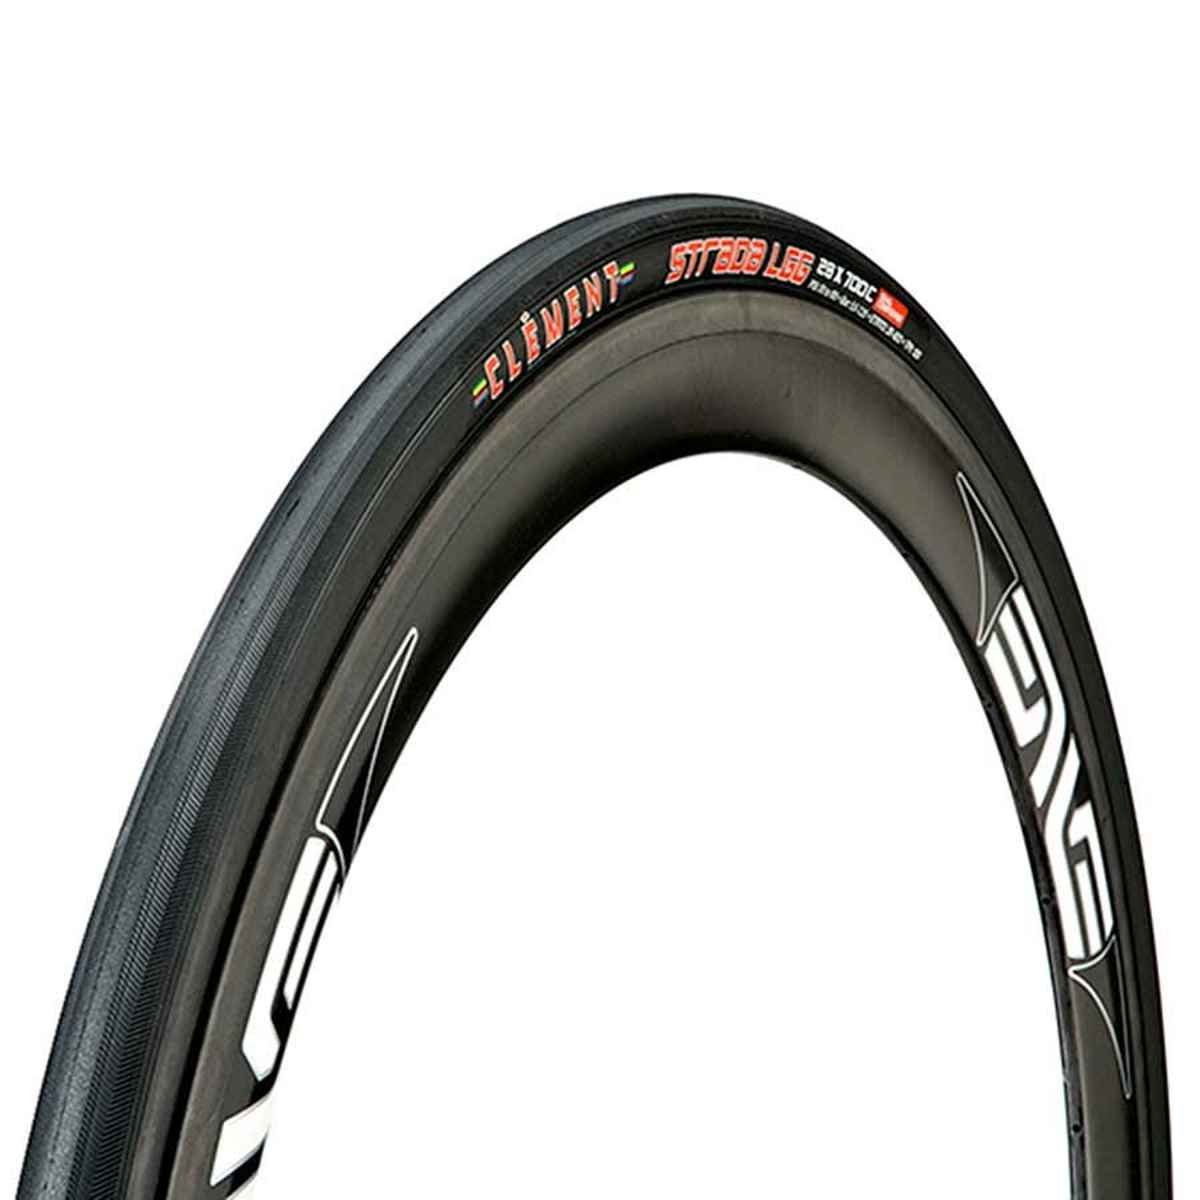 Donnelly Strada LGG Tire 700x25mm 120tpi Folding Black